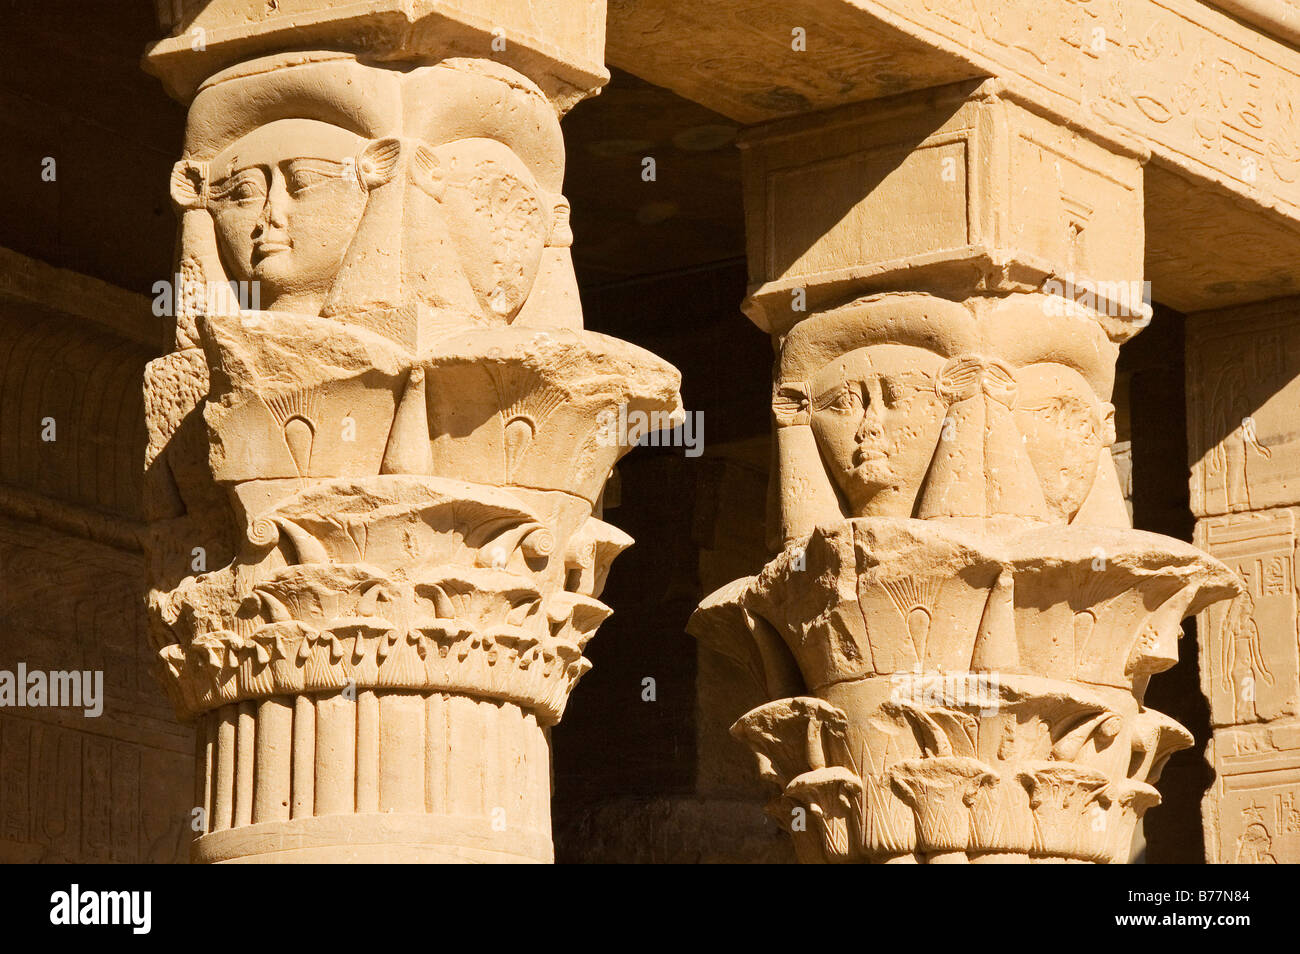 Columns With Mythical Creatures Stock Photos & Columns With